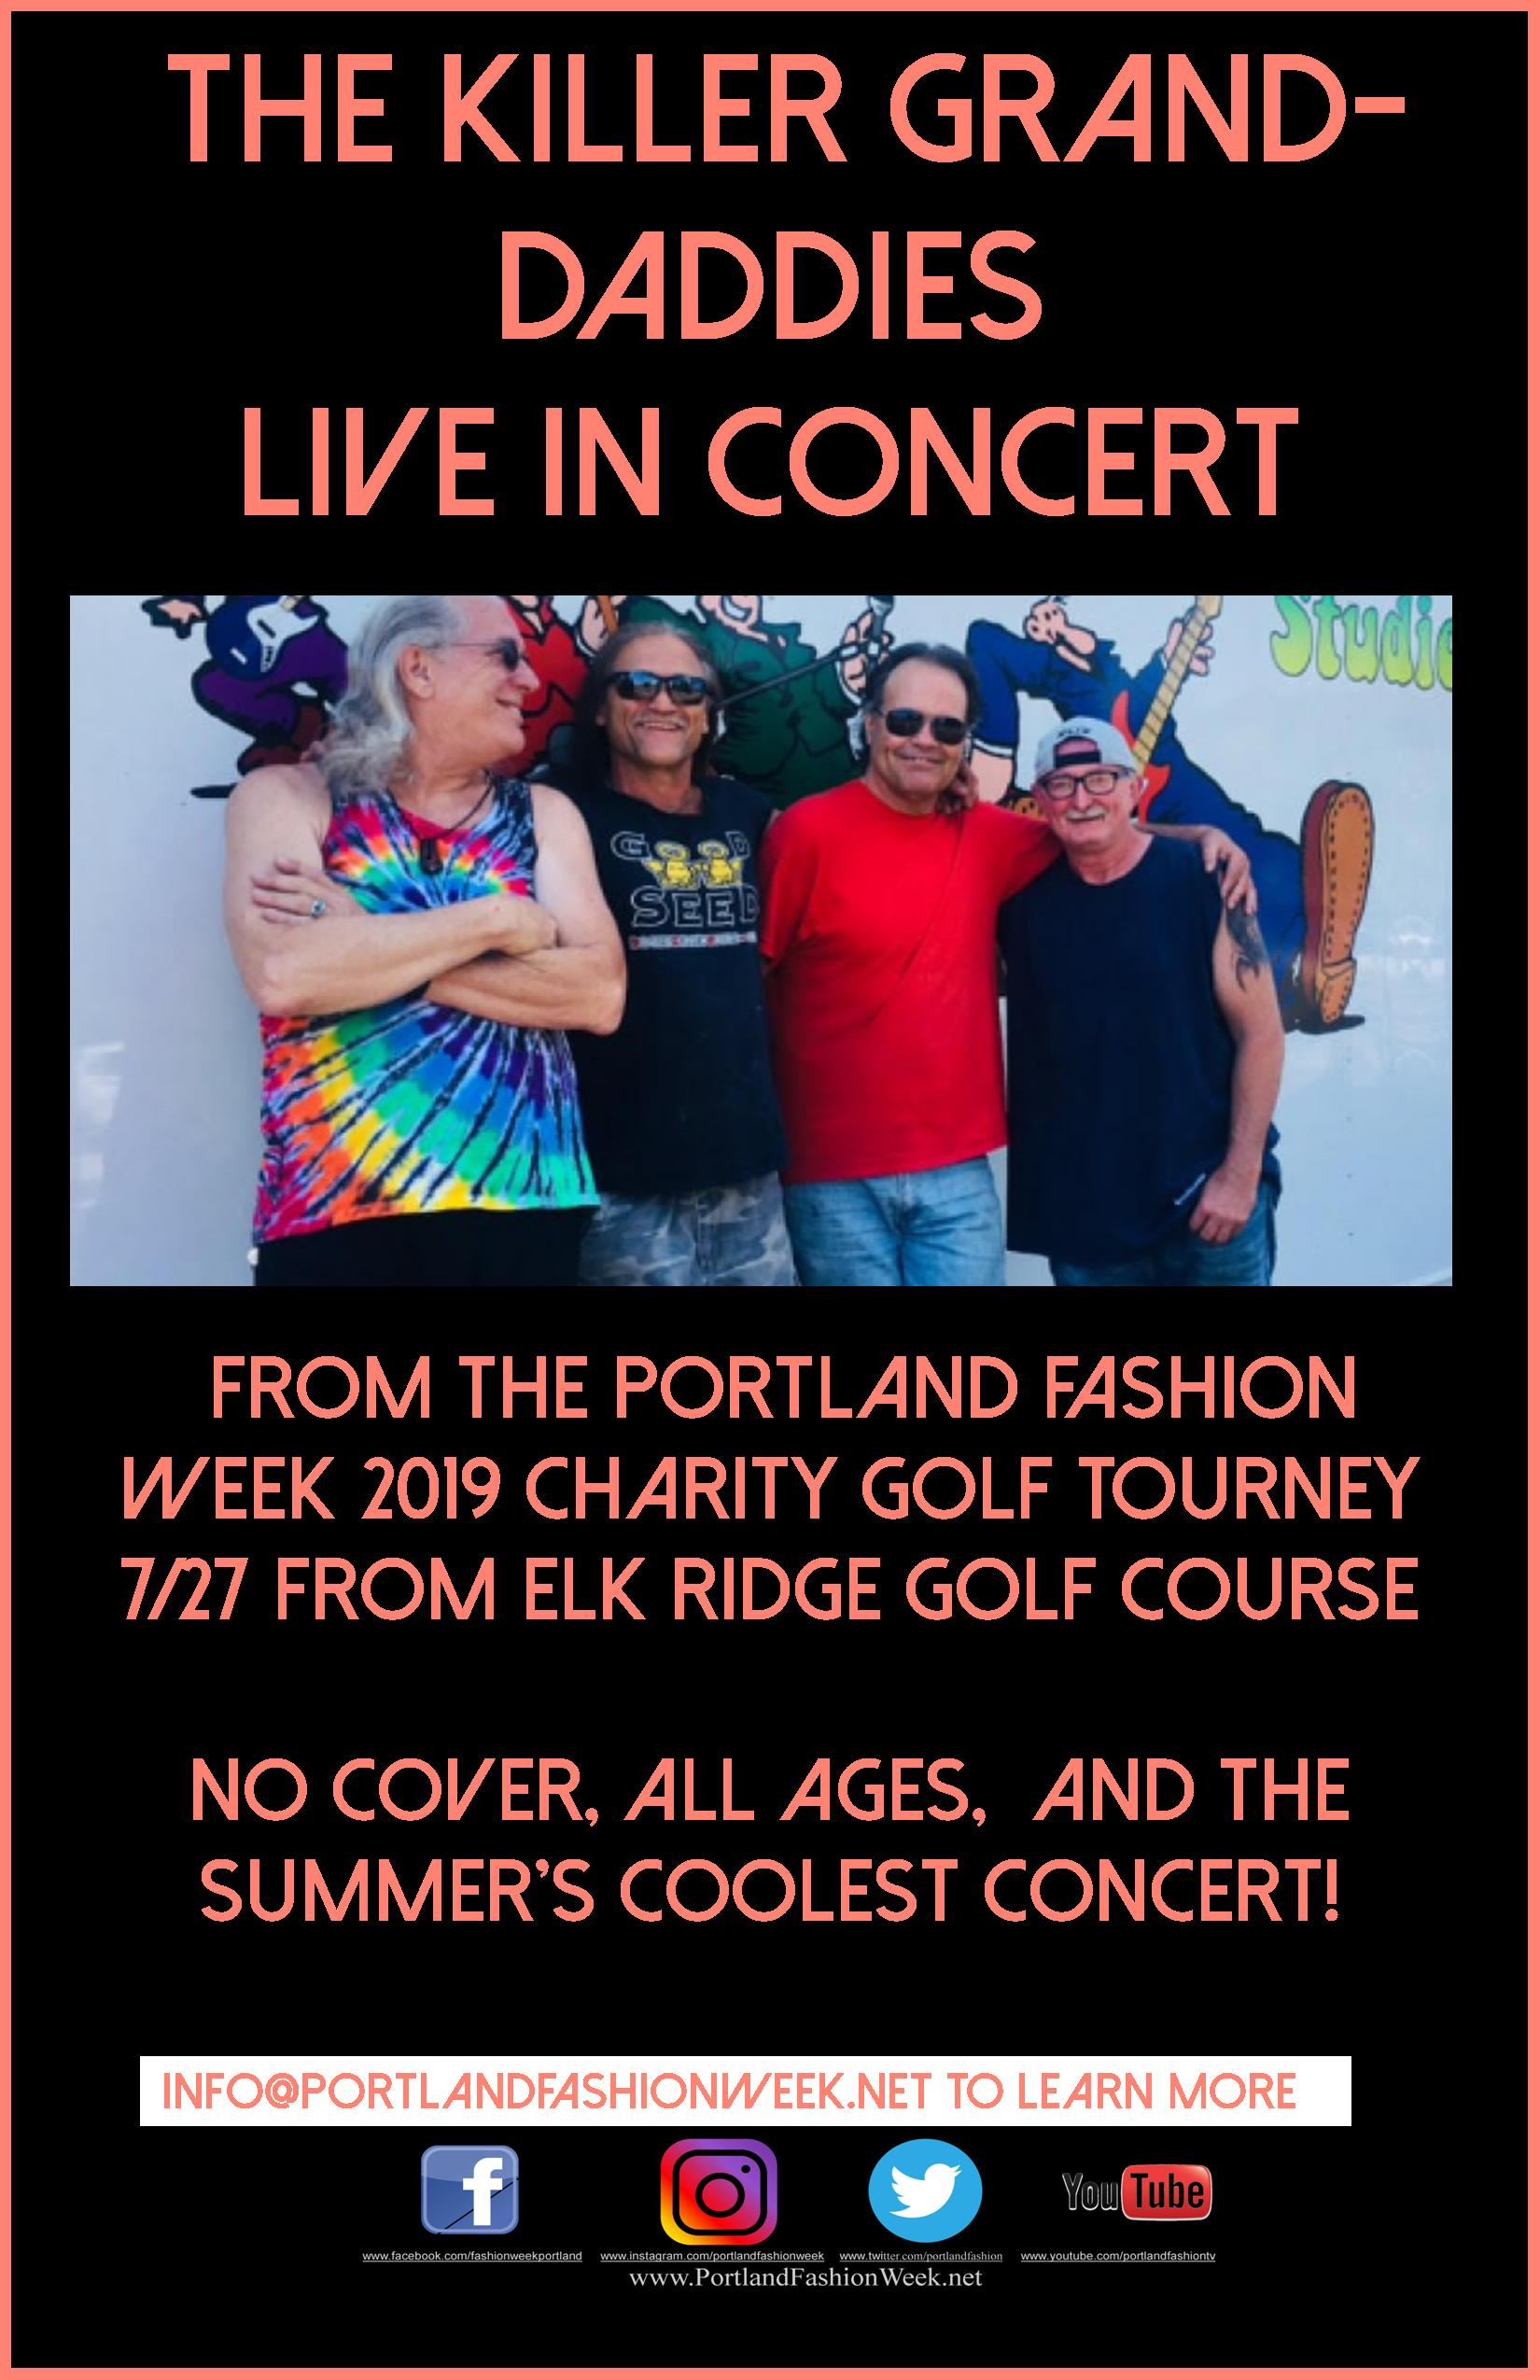 """Dave Dahl and The Killer Granddaddies! - ALL ages, no cover, the coolest band, most beautiful course, and YOU will make it another night to remember! Proceeds to benefit the Portland Fashion Foundation's """"New and Expecting Mommies' Fund""""!"""